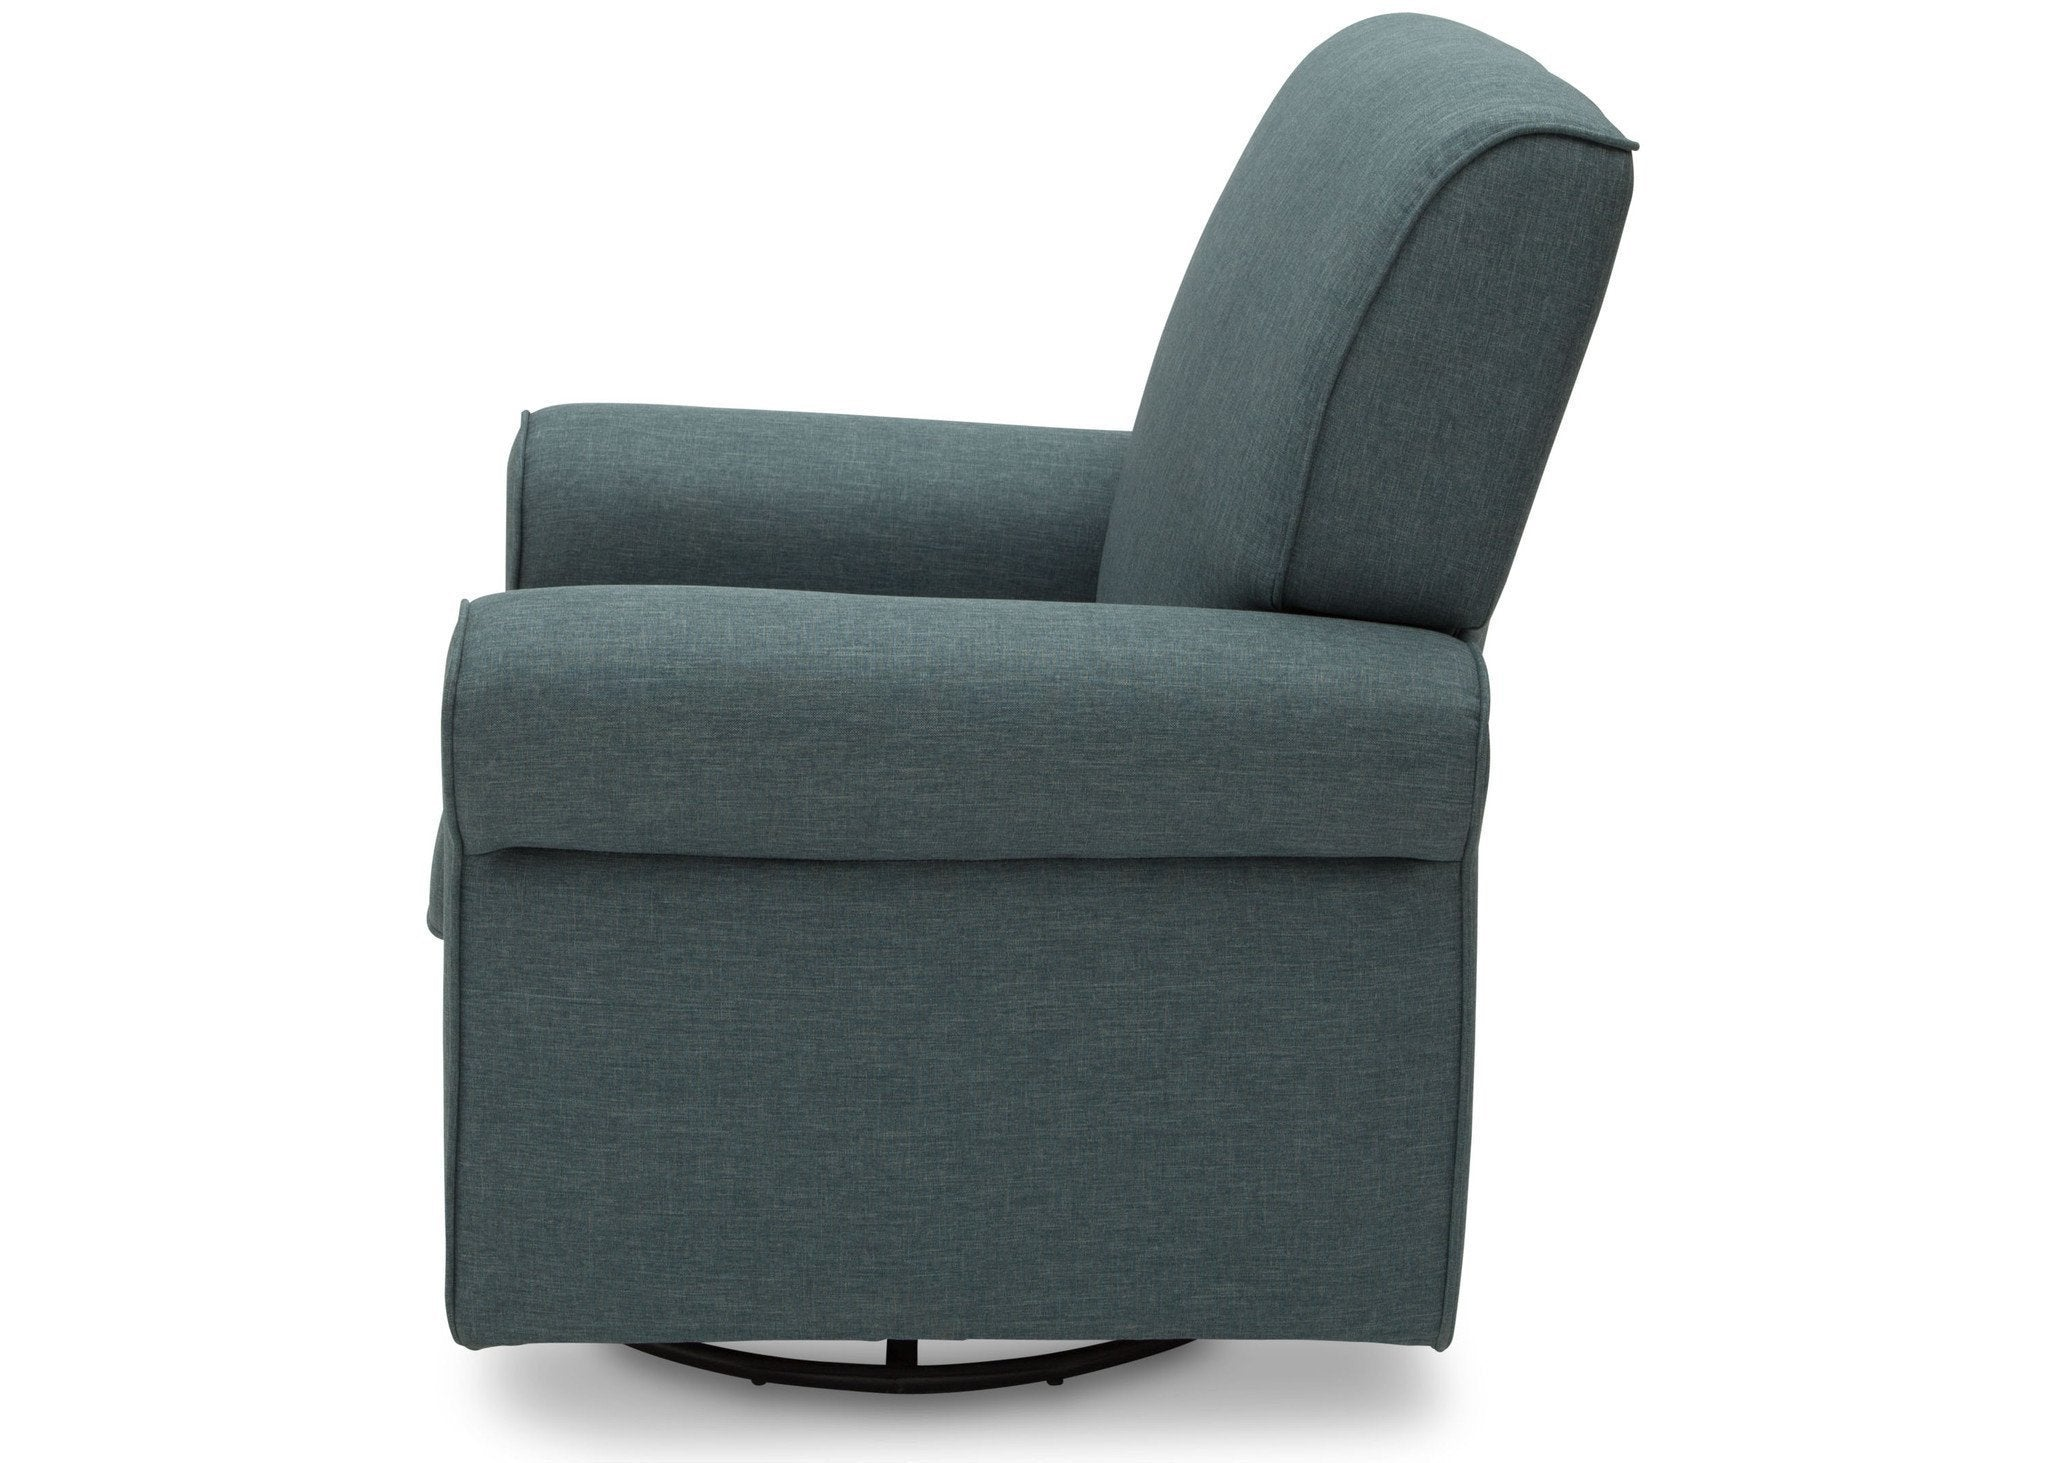 Simmons Kids Lagoon (428) Avery Upholstered Glider, Full Left Side View d4d